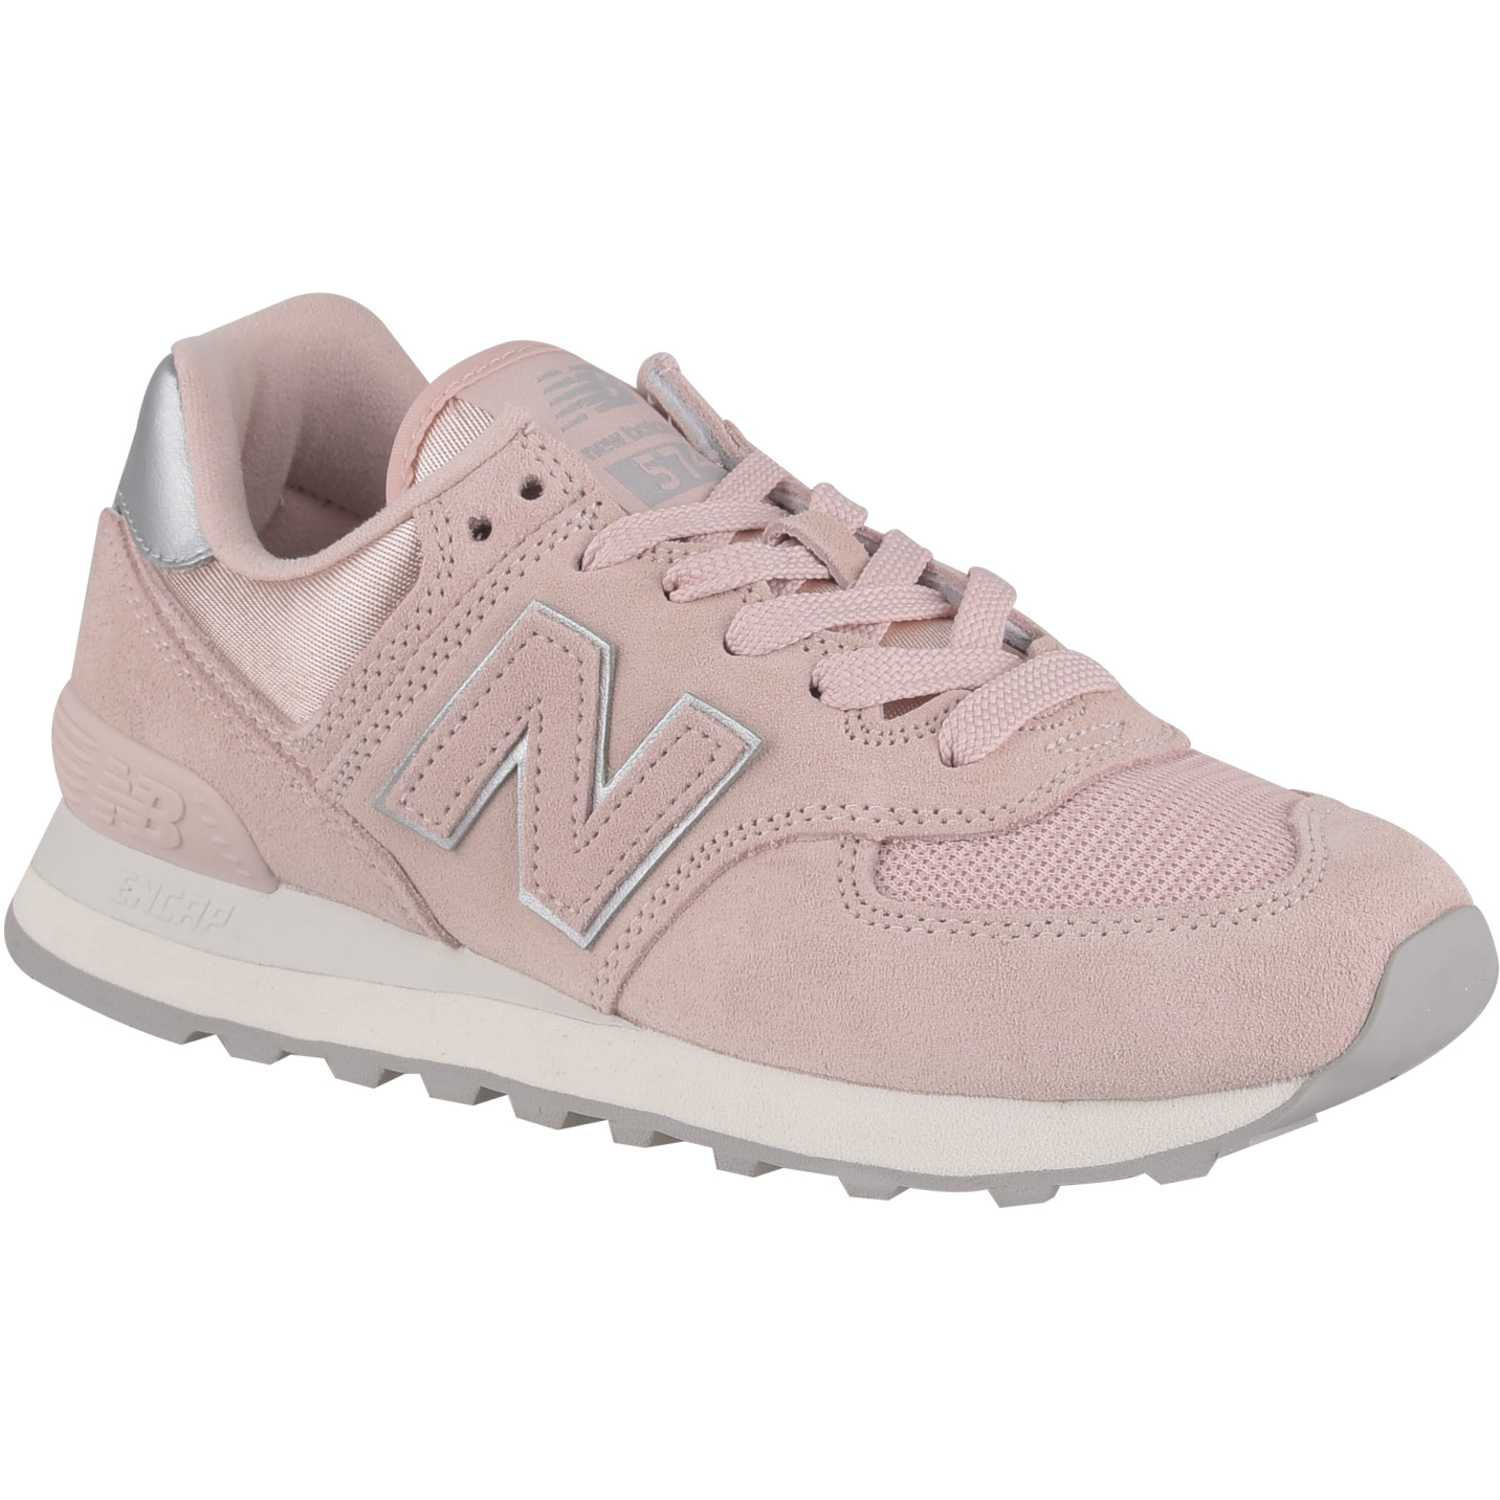 New Balance 574 Rosado / gris Walking | platanitos.com